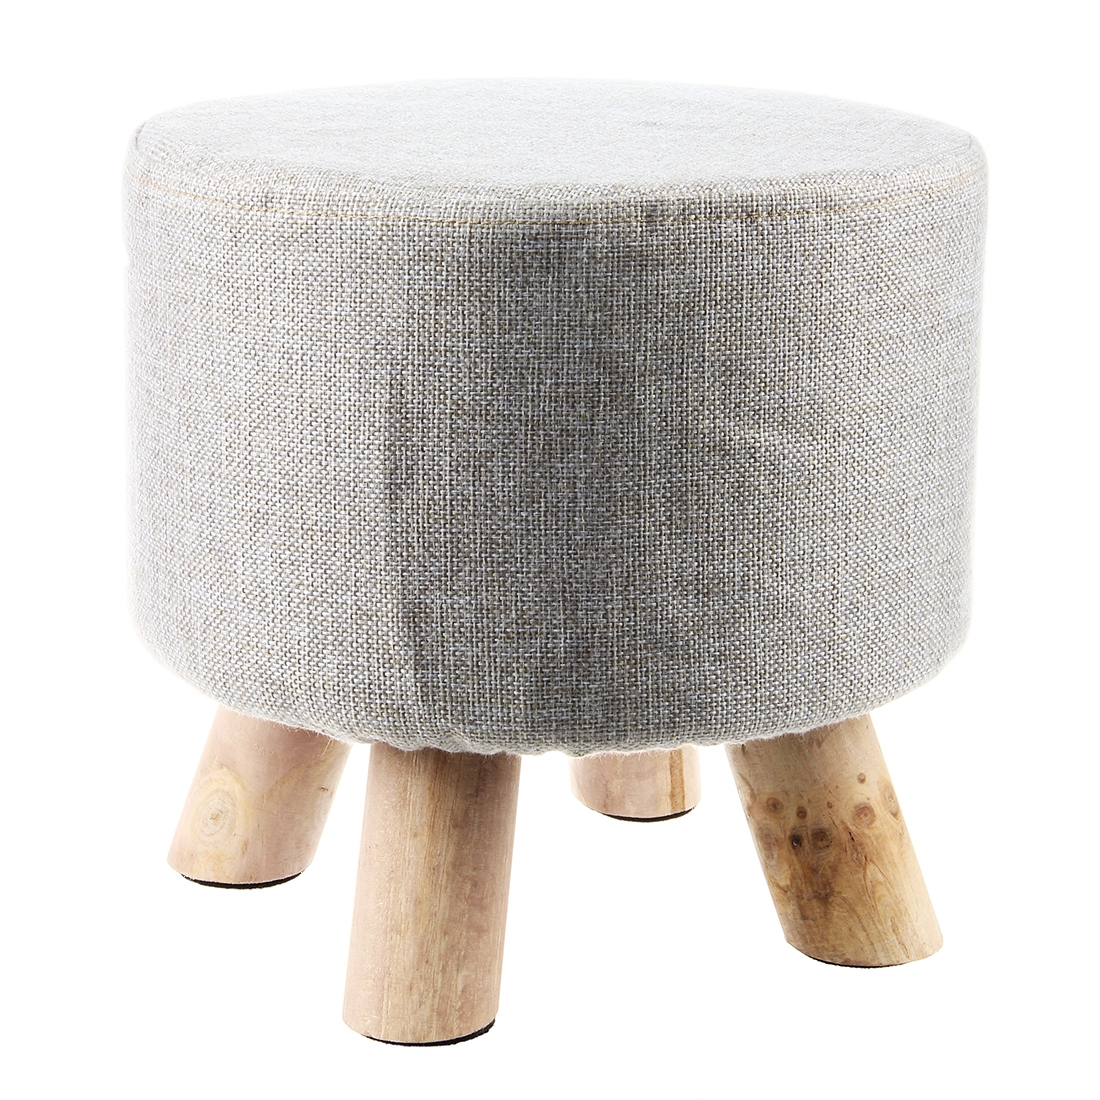 Online Get Cheap Round Footstool Aliexpress Alibaba Group With Cheap Footstools And Pouffes (Image 13 of 15)